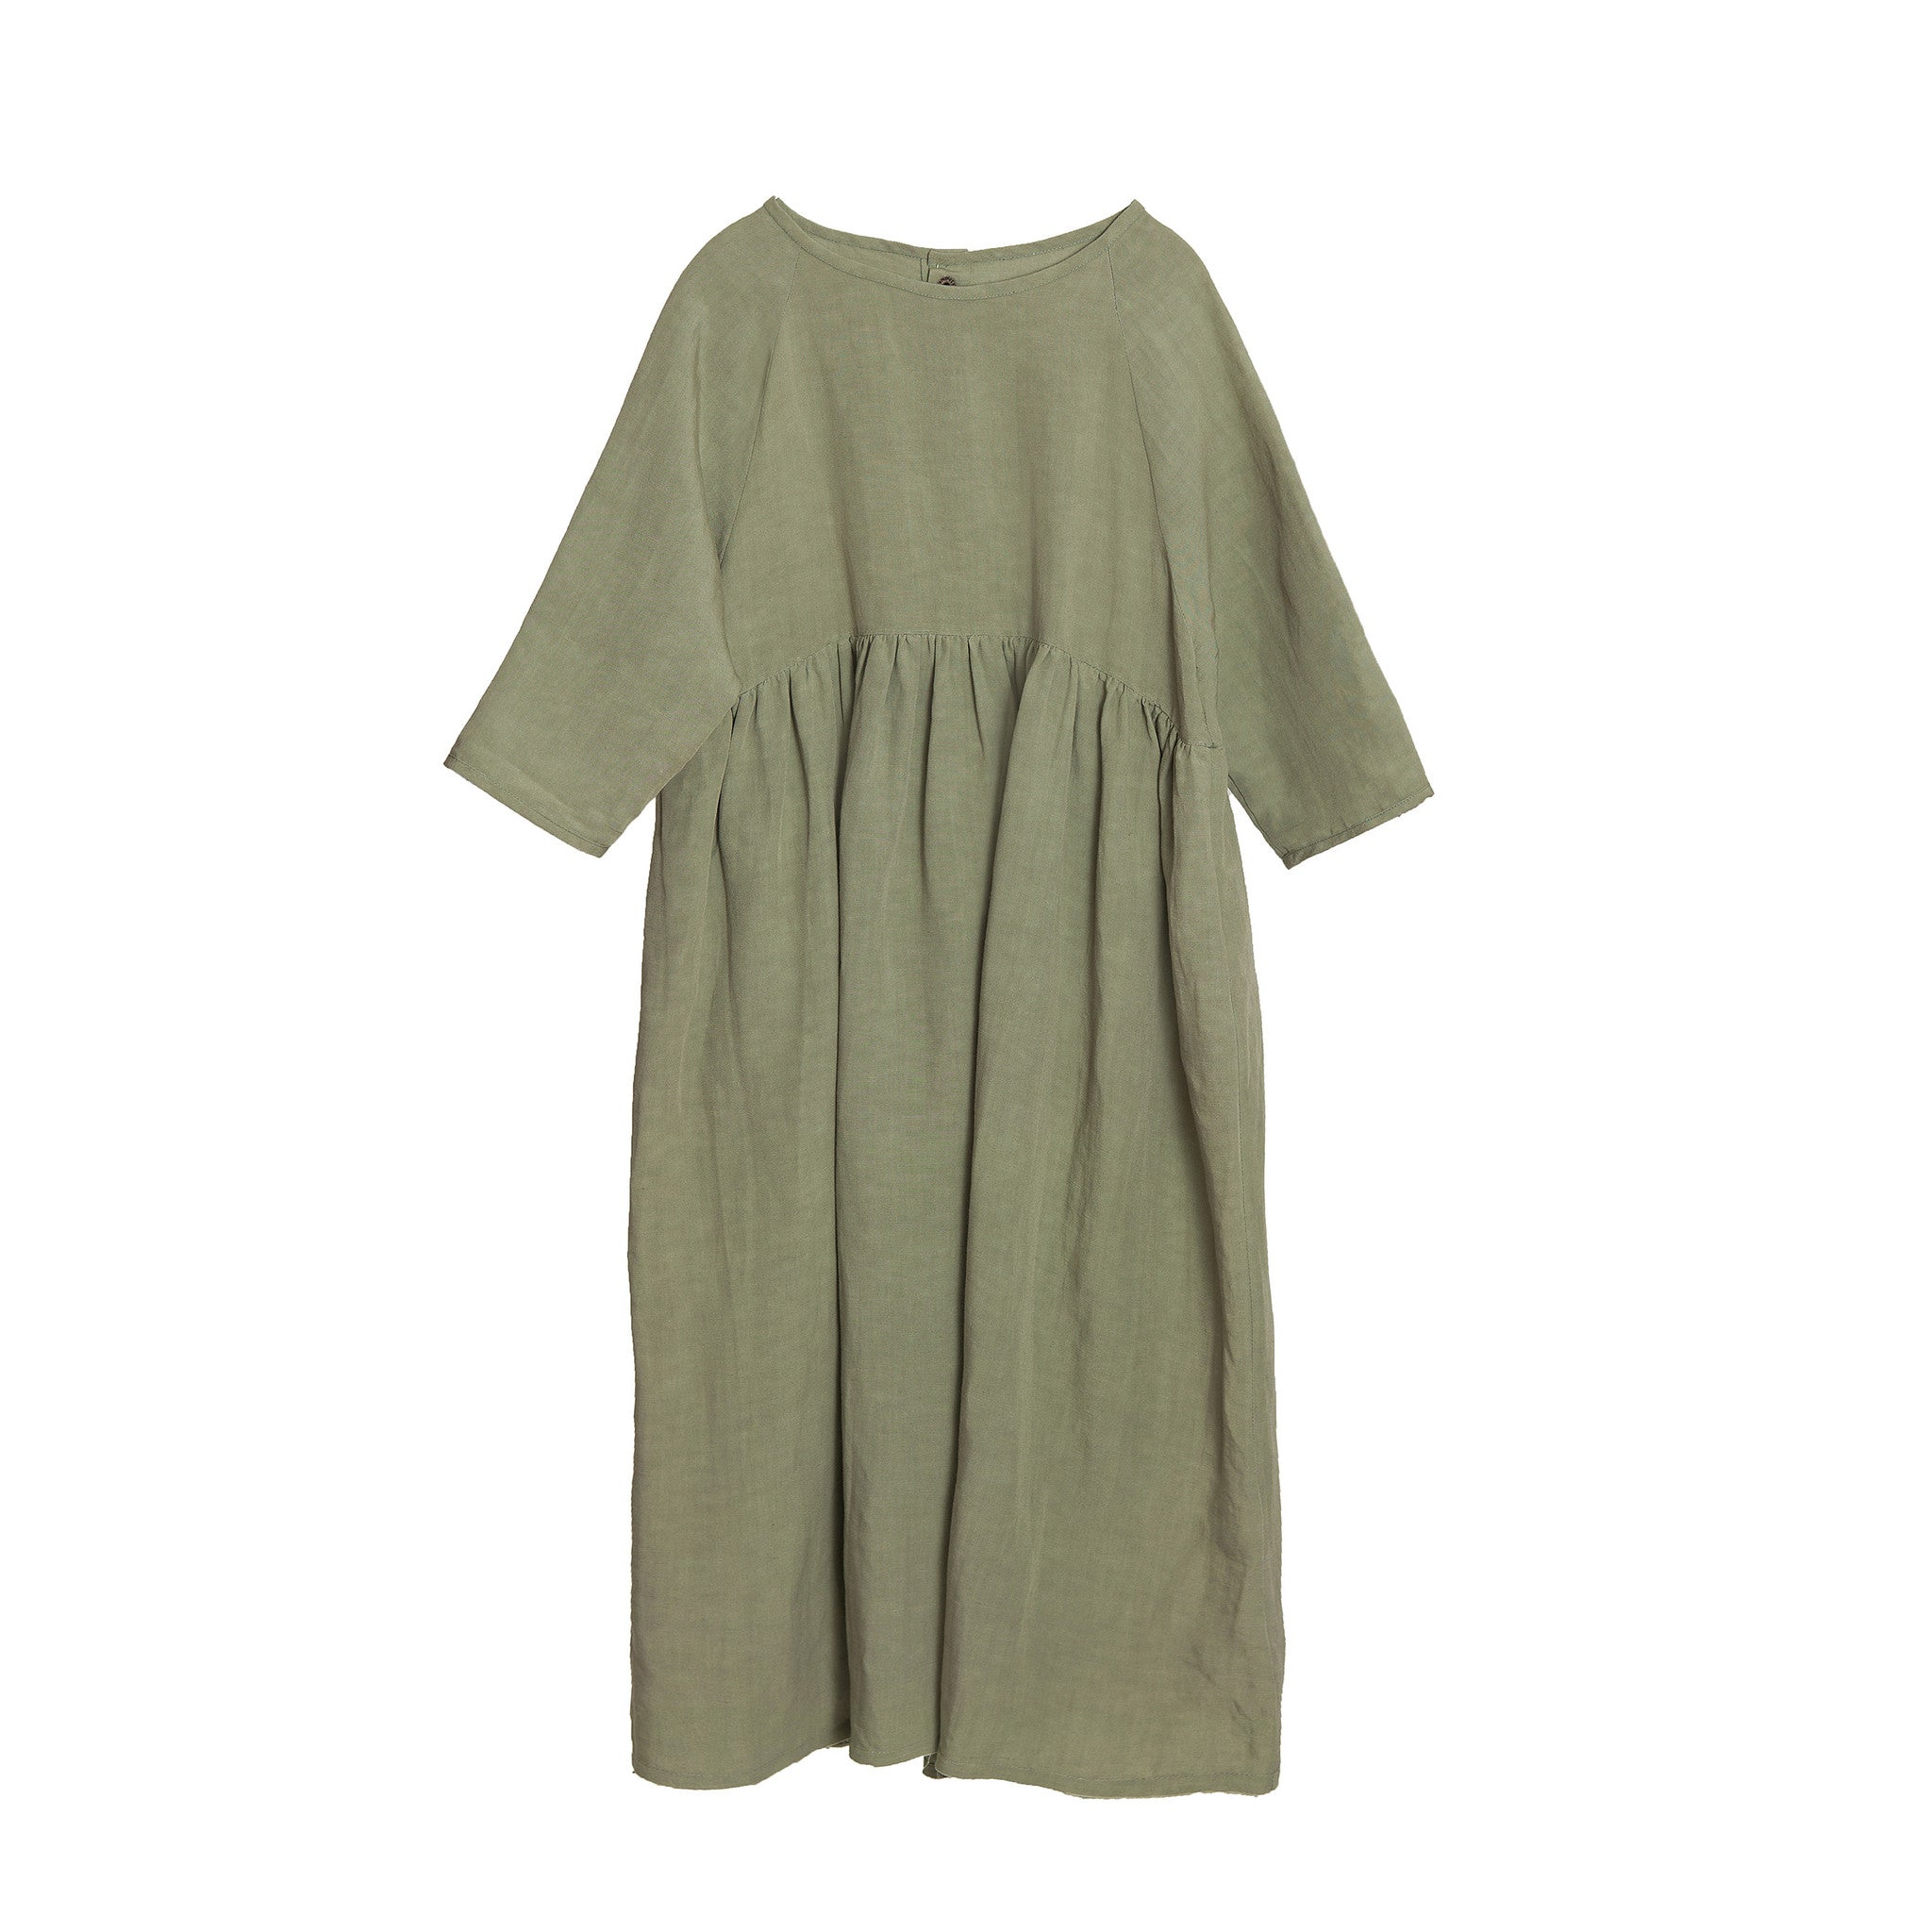 Little Creative Factory Long Desert Girl's Dress in Cactus | BIEN BIEN